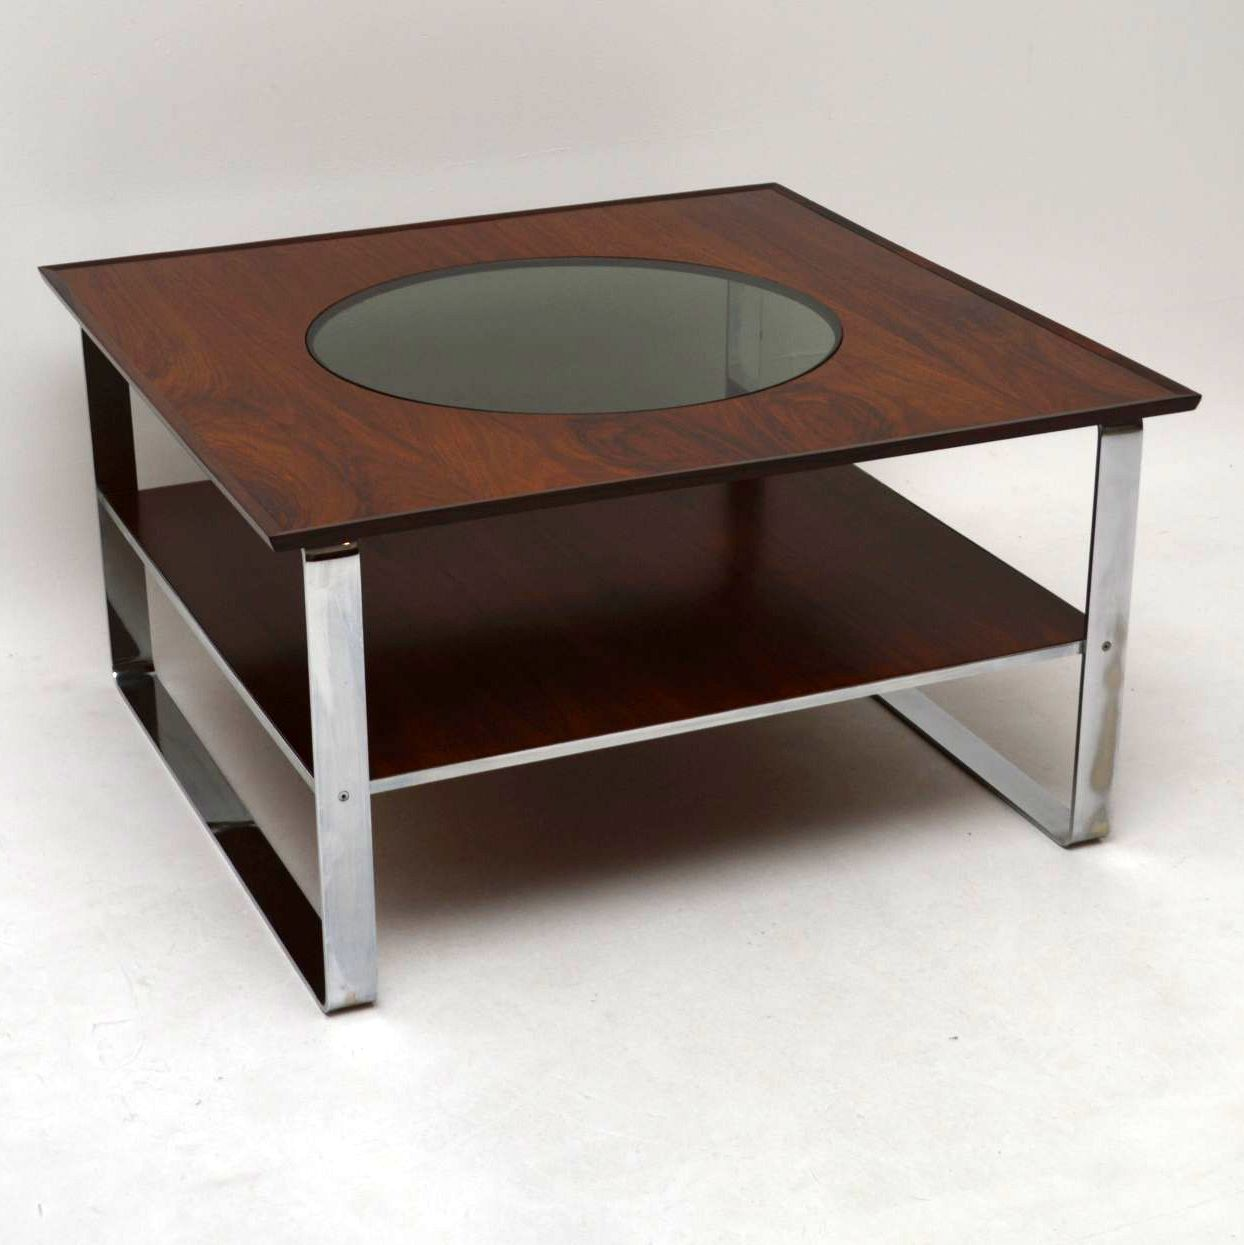 Retro Rosewood & Chrome Coffee Table by Guy Rogers Vintage 1960's